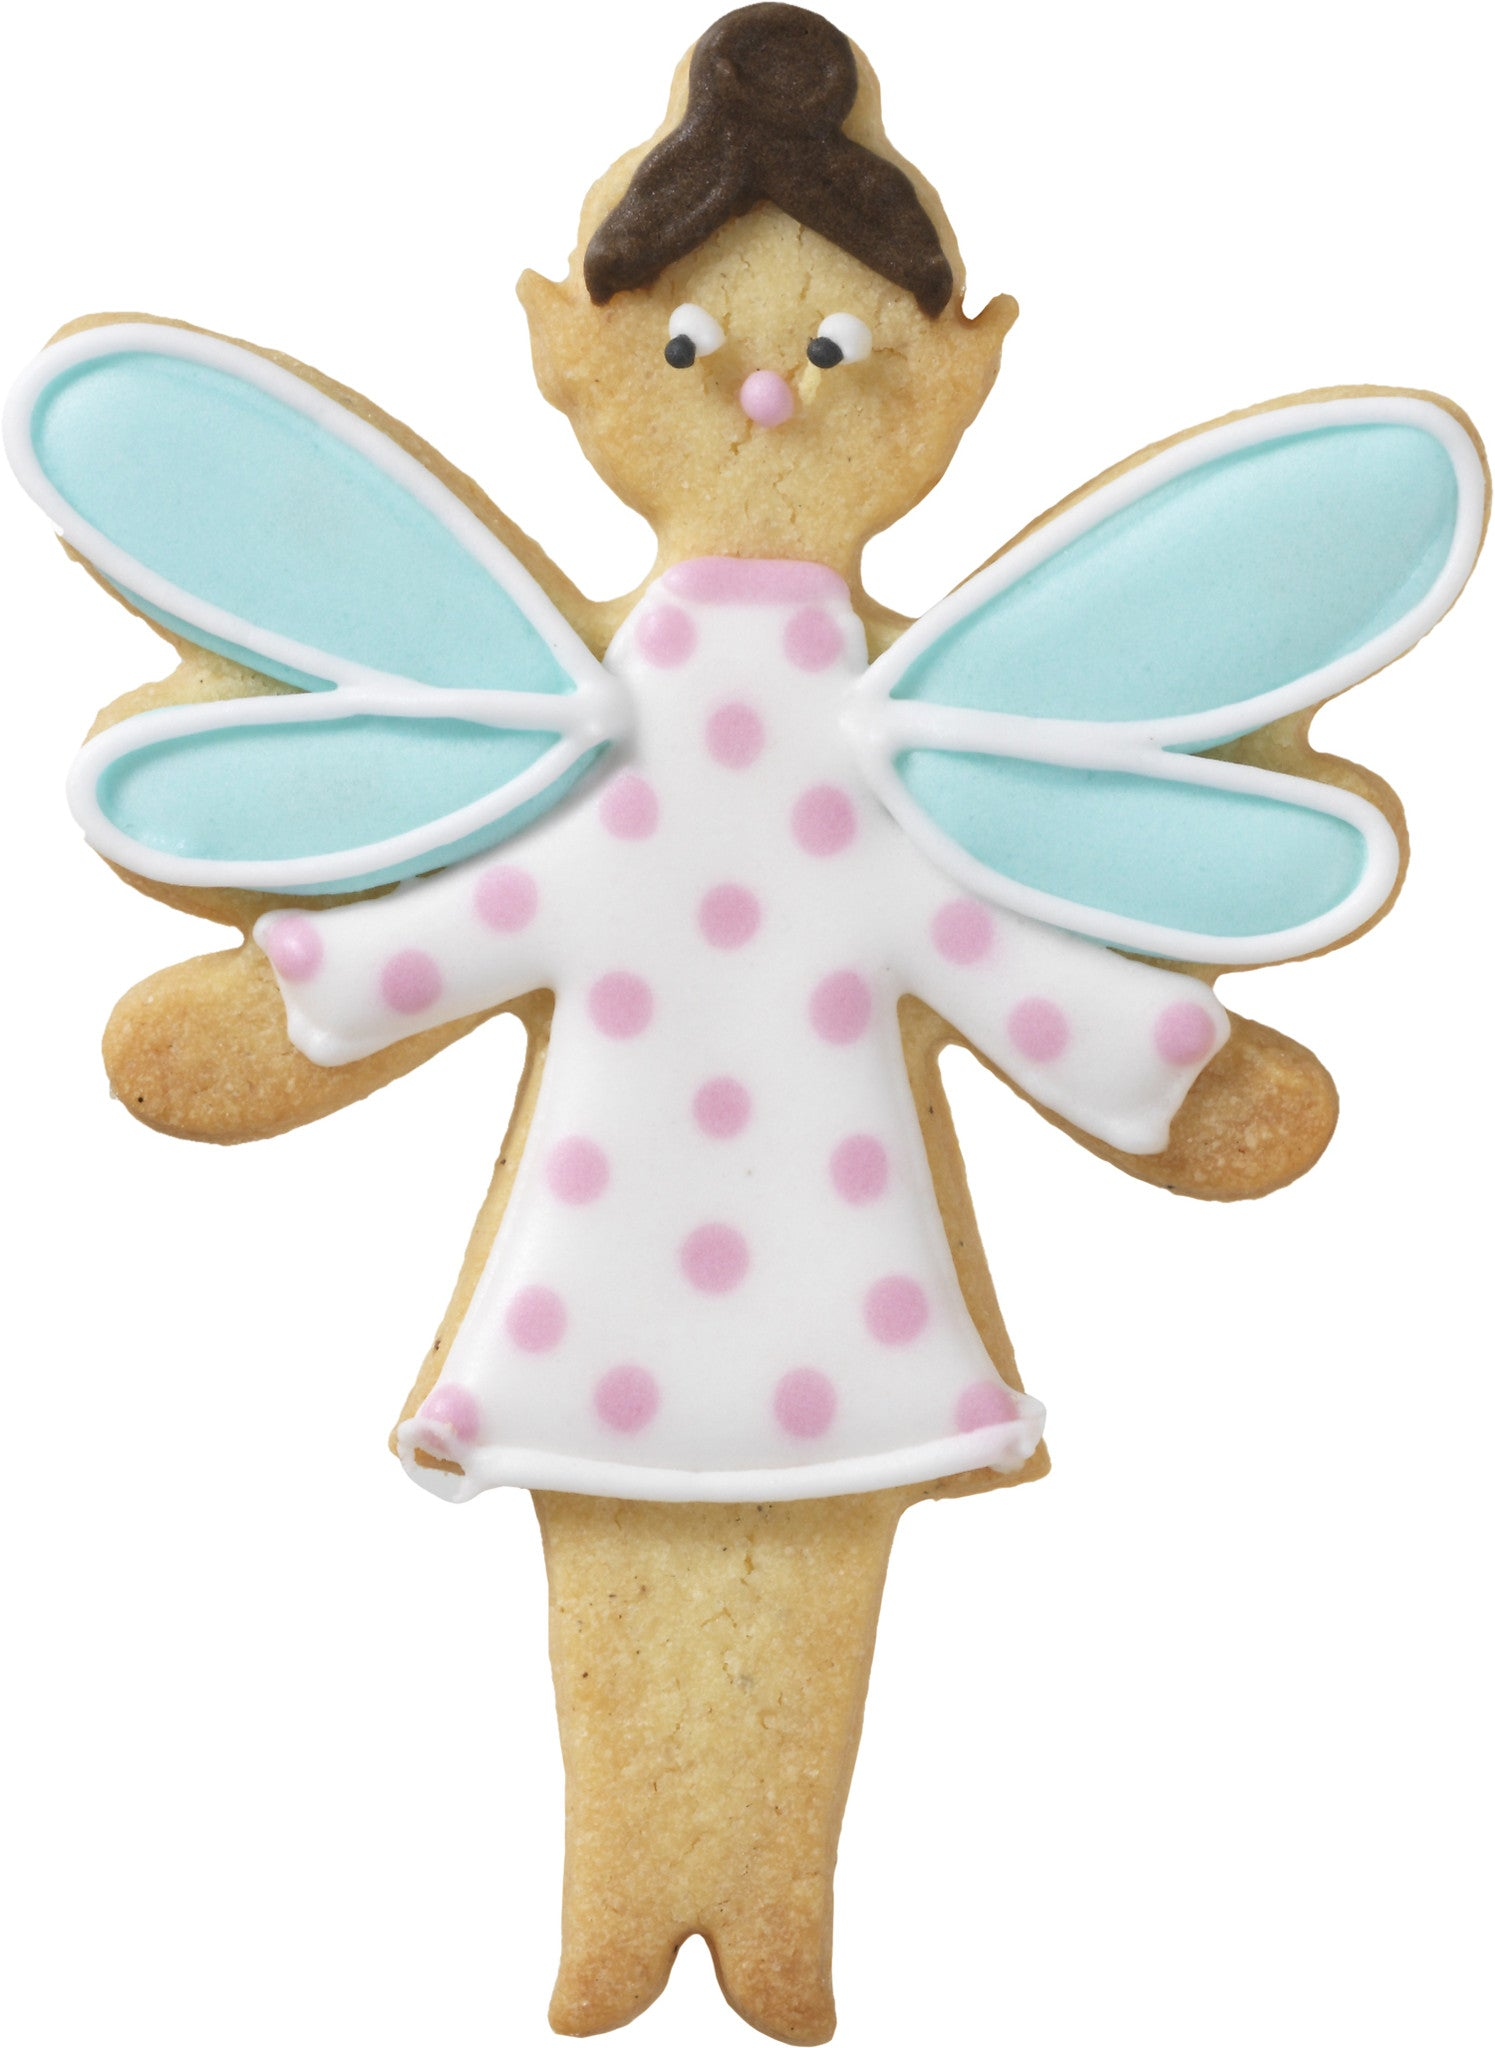 Fairy Standing 11cm Cookie Cutter-Cookie Cutter Shop Australia